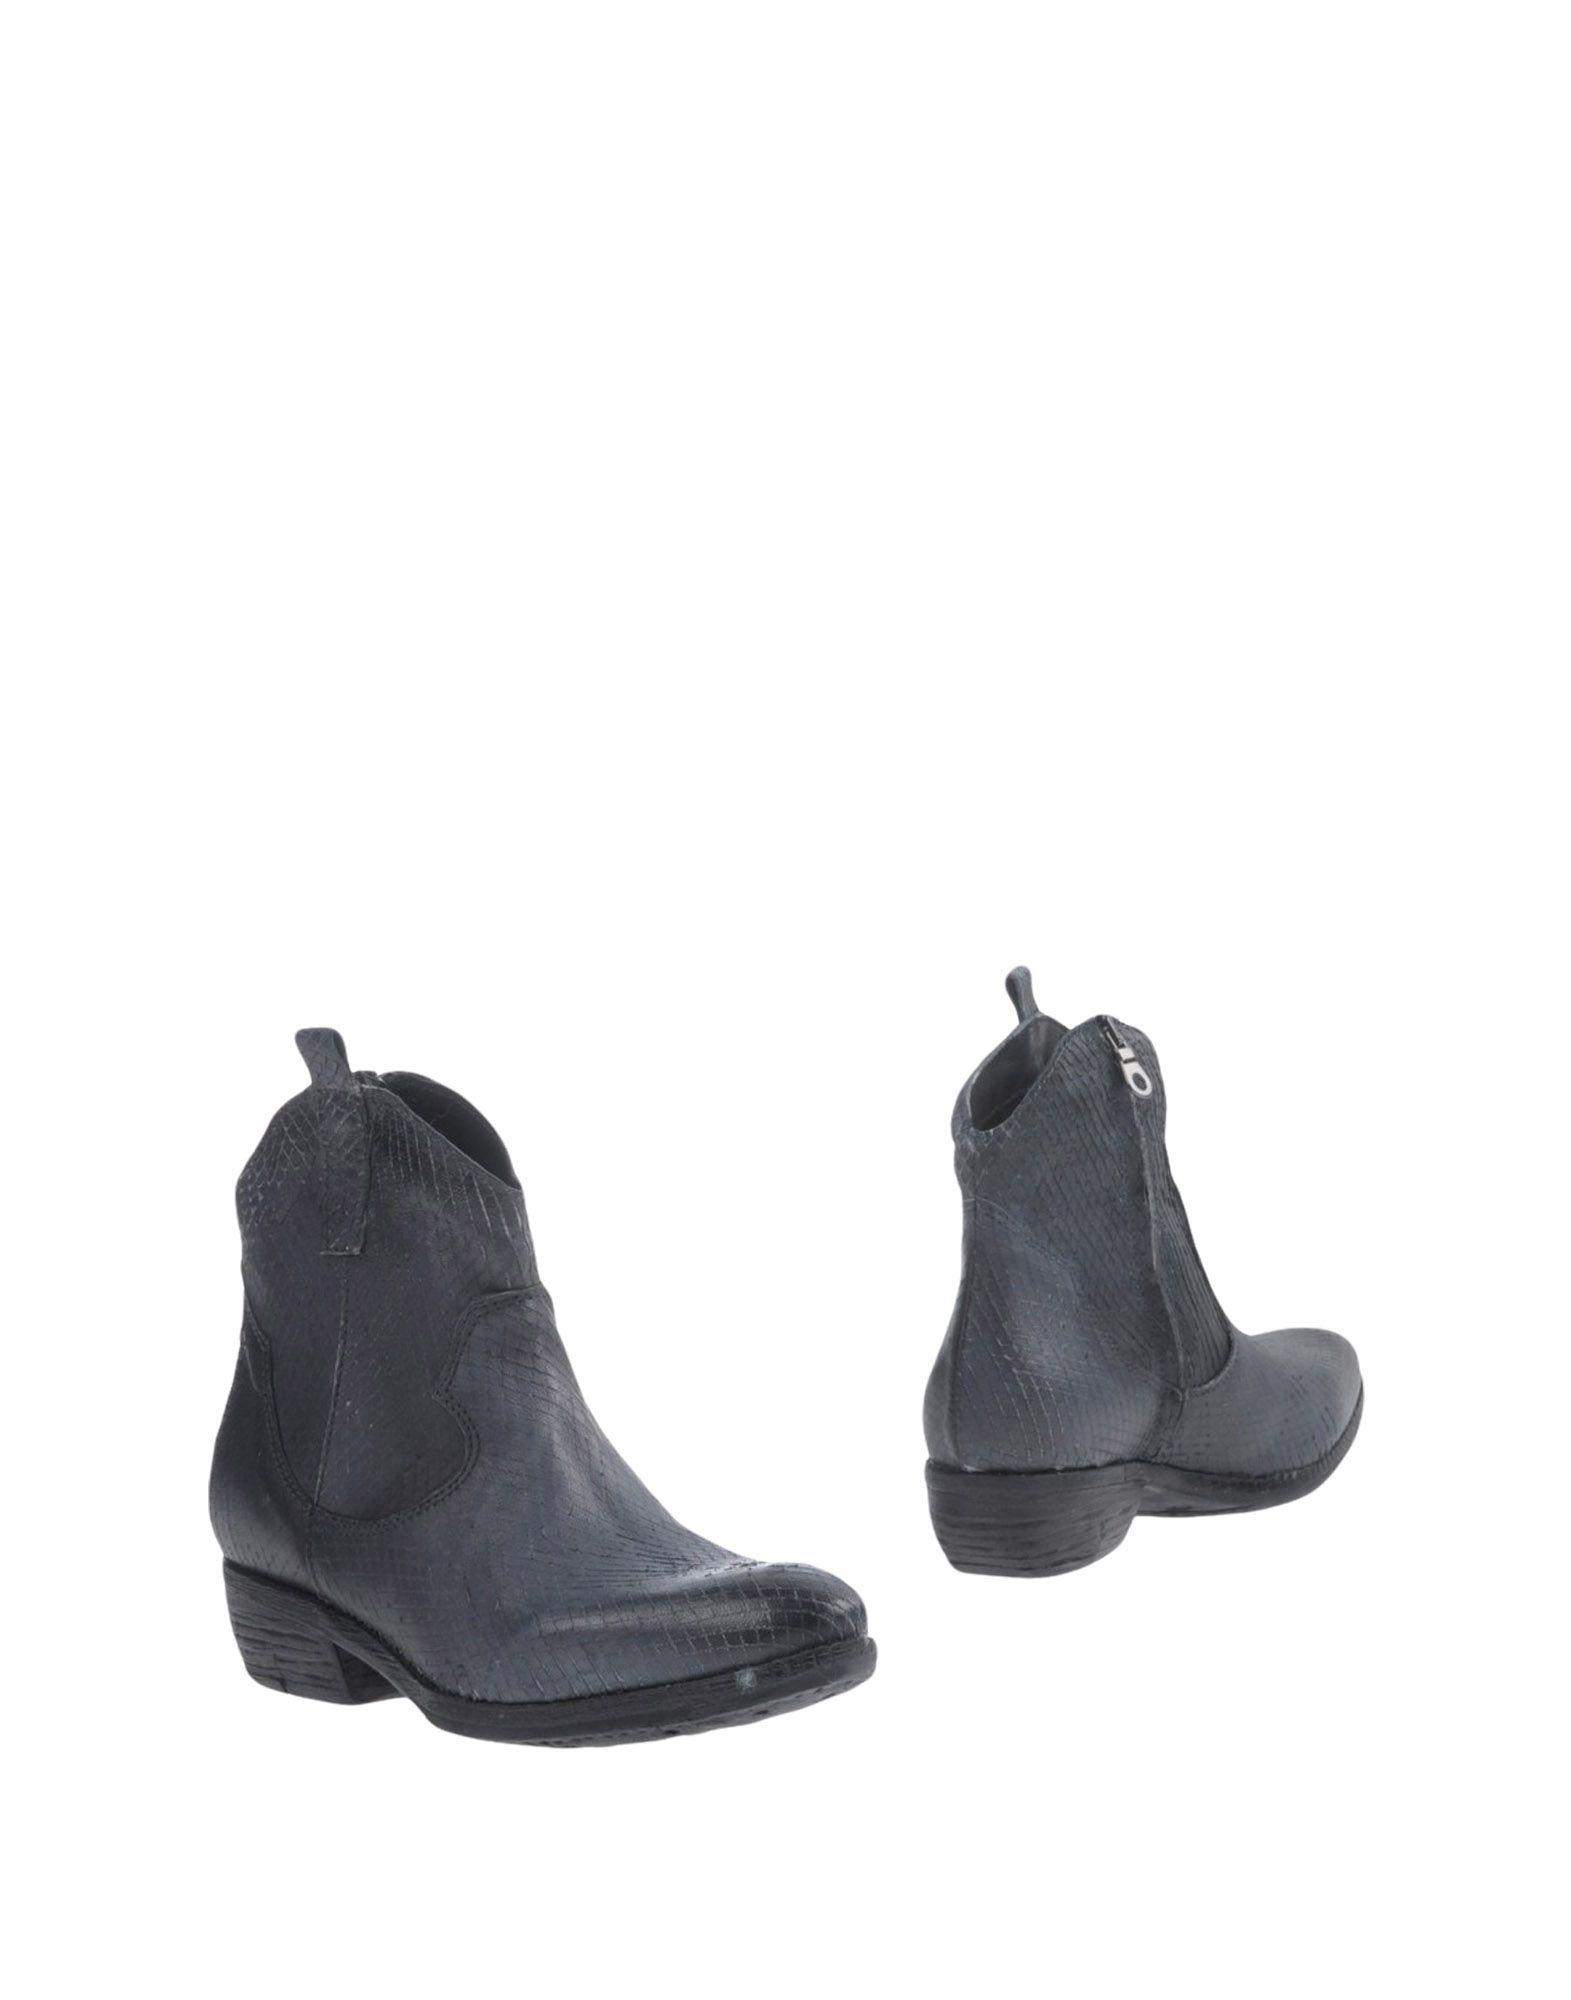 FOOTWEAR - Boots Divine Follie Buy Cheap Visa Payment Sale Shop For Outlet With Credit Card Cheap Sale Best Seller Free Shipping Online H6ebwK3k6